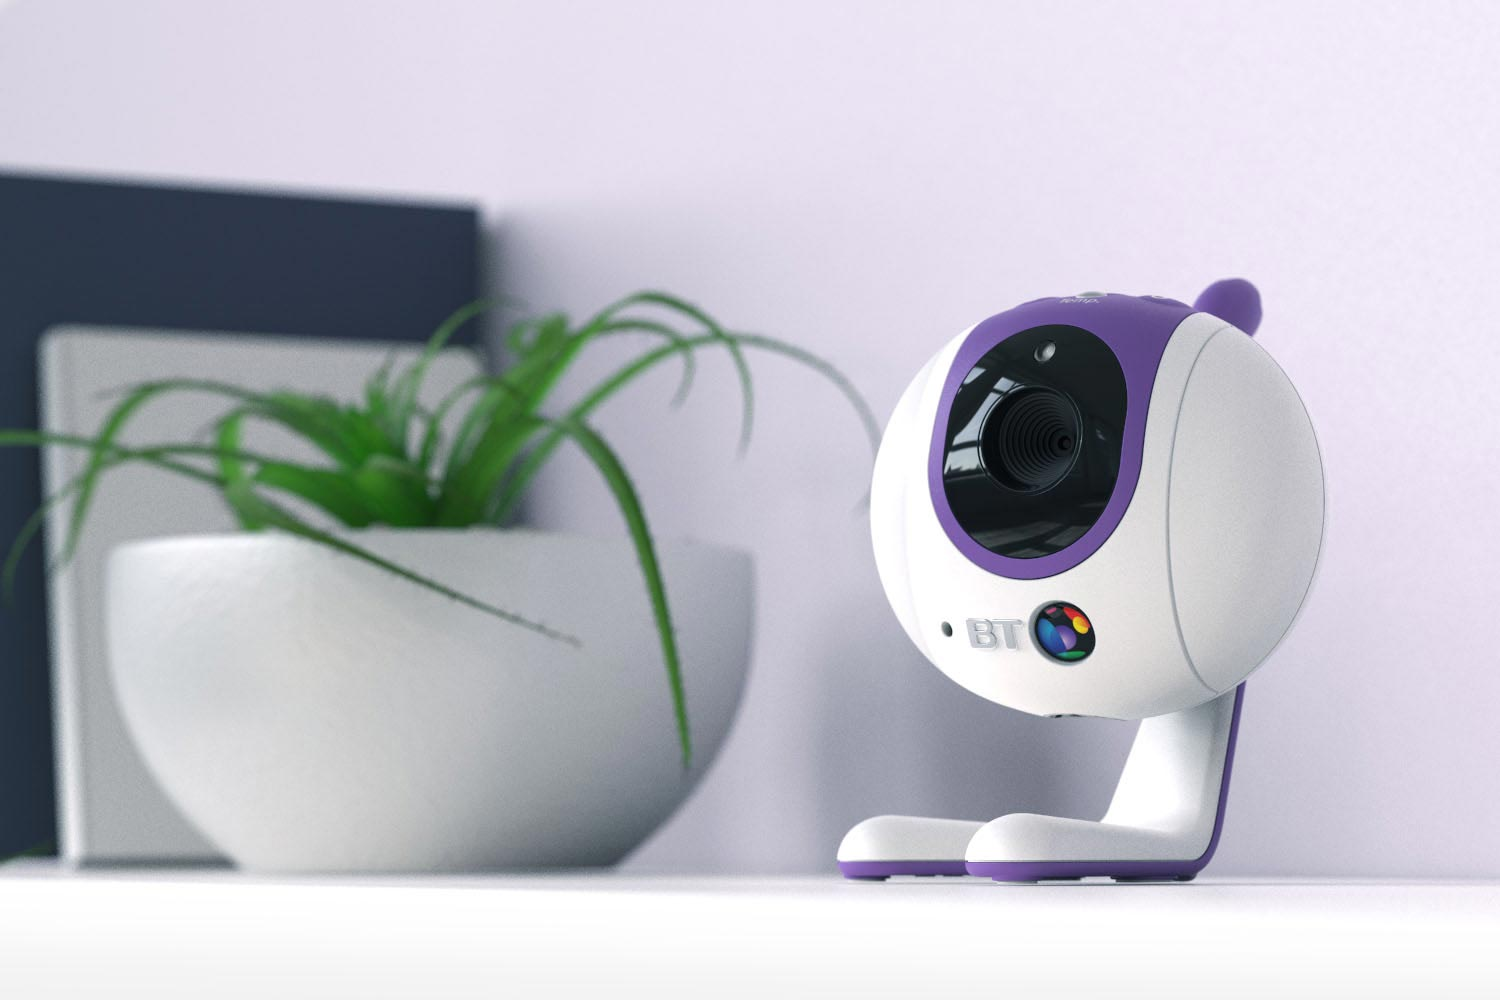 Product Design Consultancy , Product Design Companies , Industrial Design Companies , Product Design, Industrial Design, Award Winning Design, BT Baby Monitor